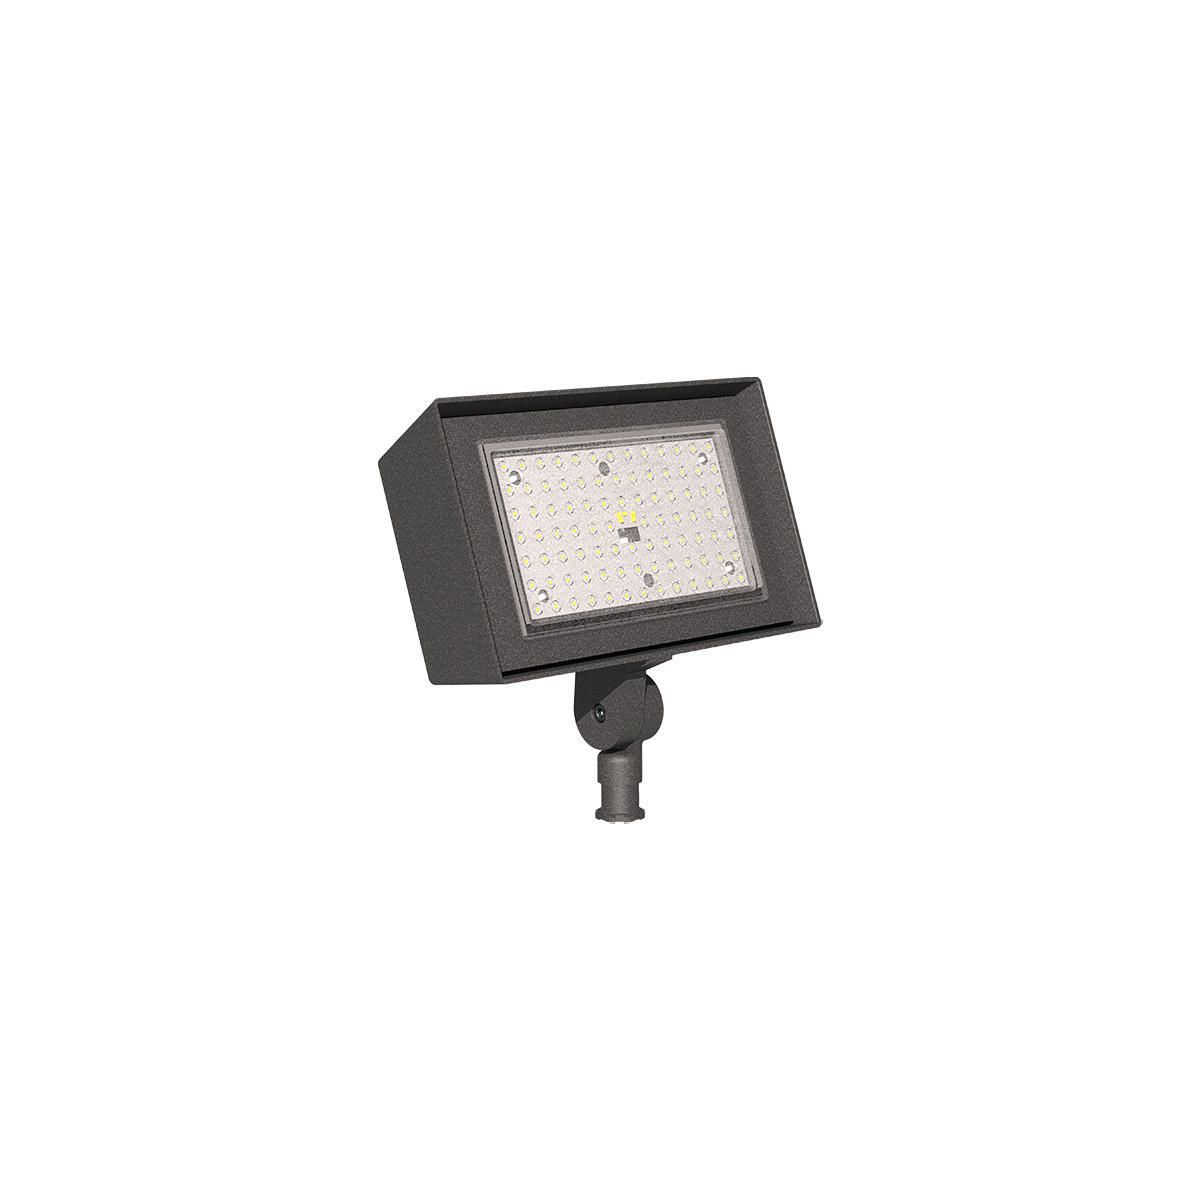 Rfl3 Ratio Floodlight Hubbell Outdoor